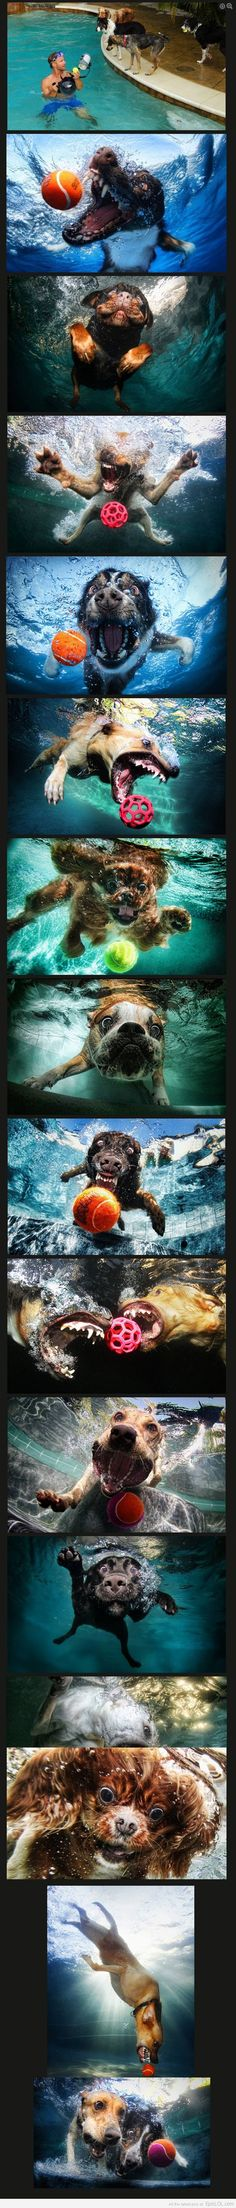 A Pack of Diverse Water Loving Dog Breeds + An Underwater HD Camera = probably a whole lot of fun! These pics are spectacular!